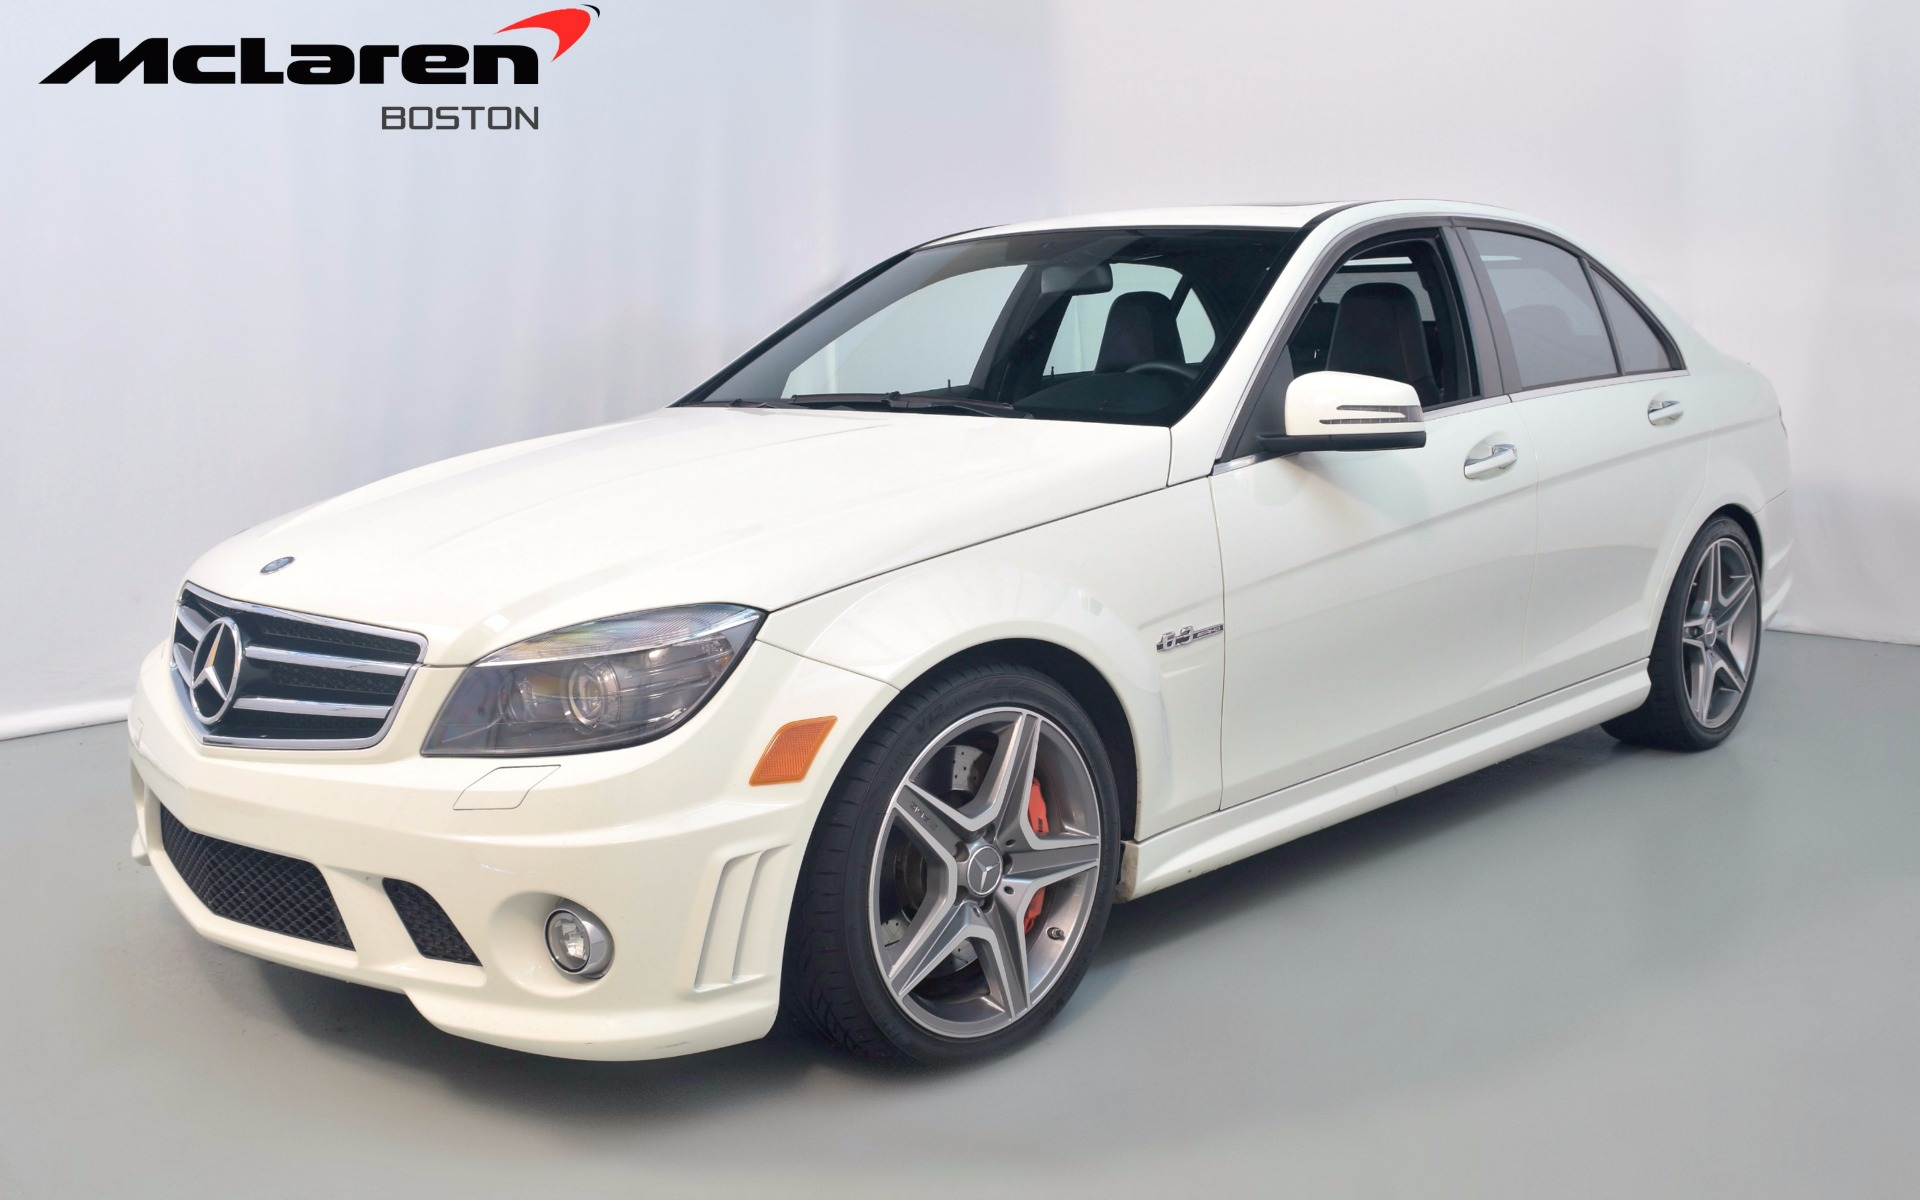 2011 mercedes benz c class c63 amg for sale in norwell ma 622129 mclaren boston. Black Bedroom Furniture Sets. Home Design Ideas